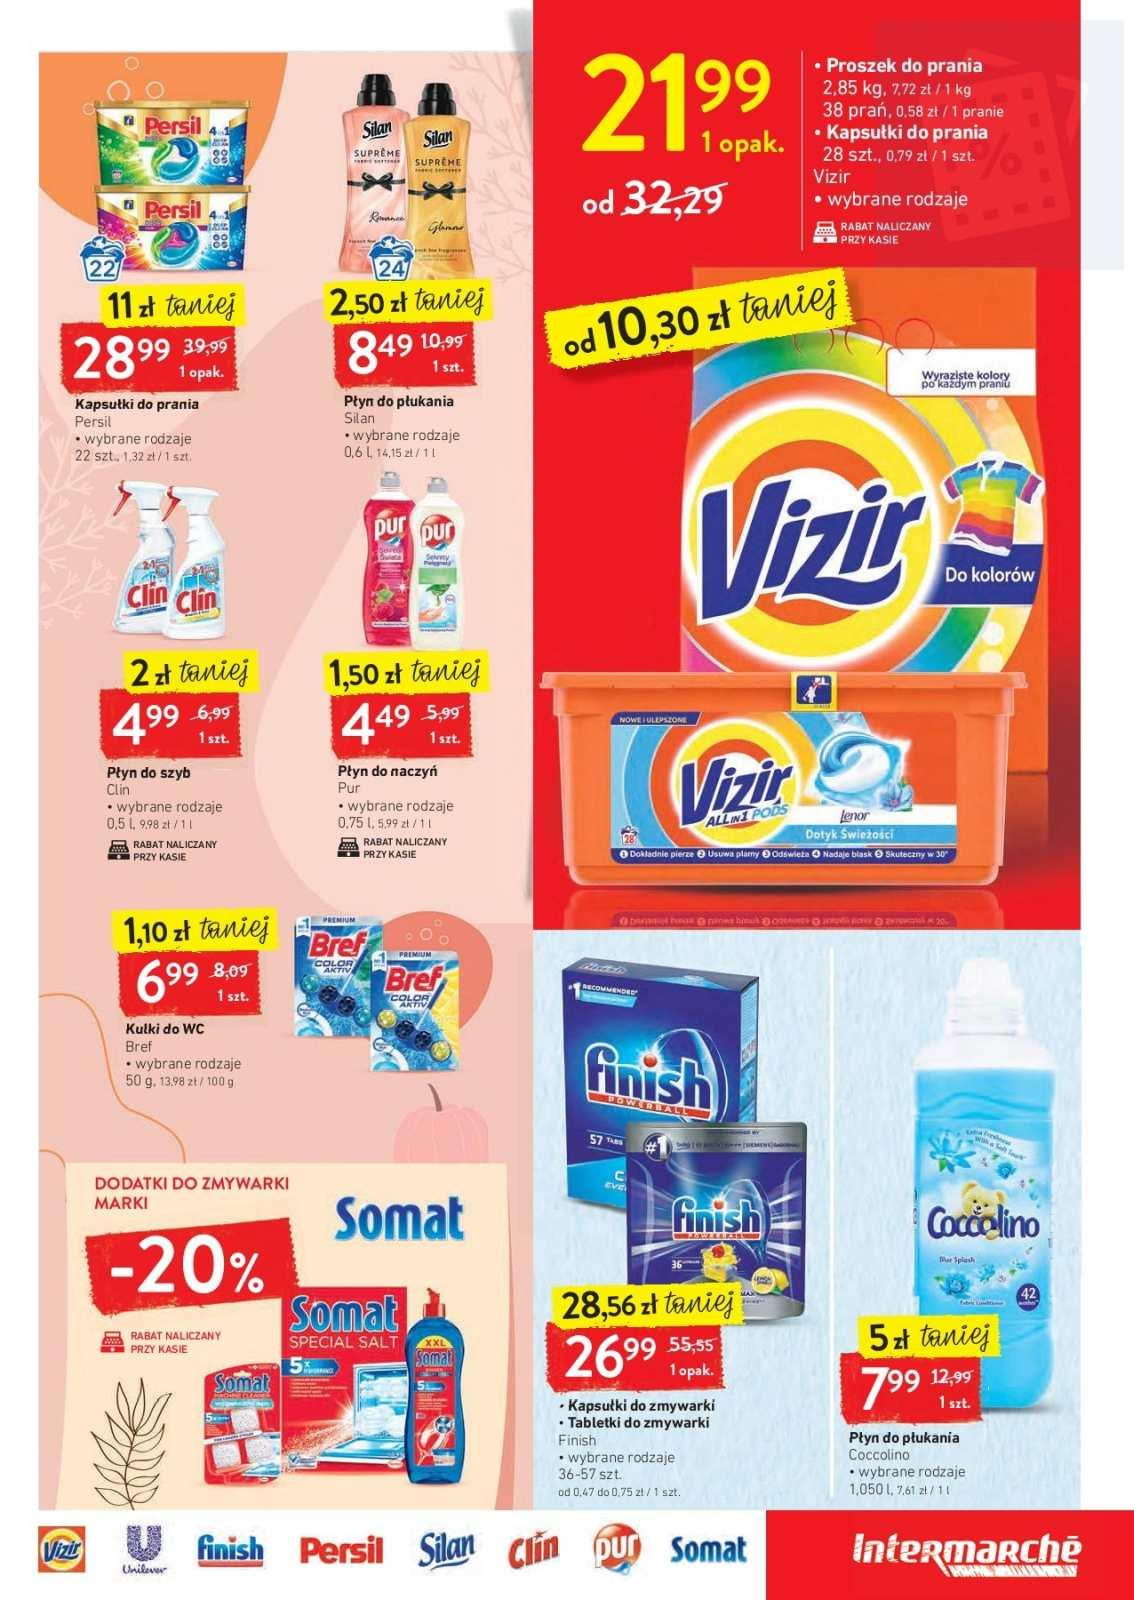 Gazetka promocyjna Intermarche do 04/11/2019 str.28